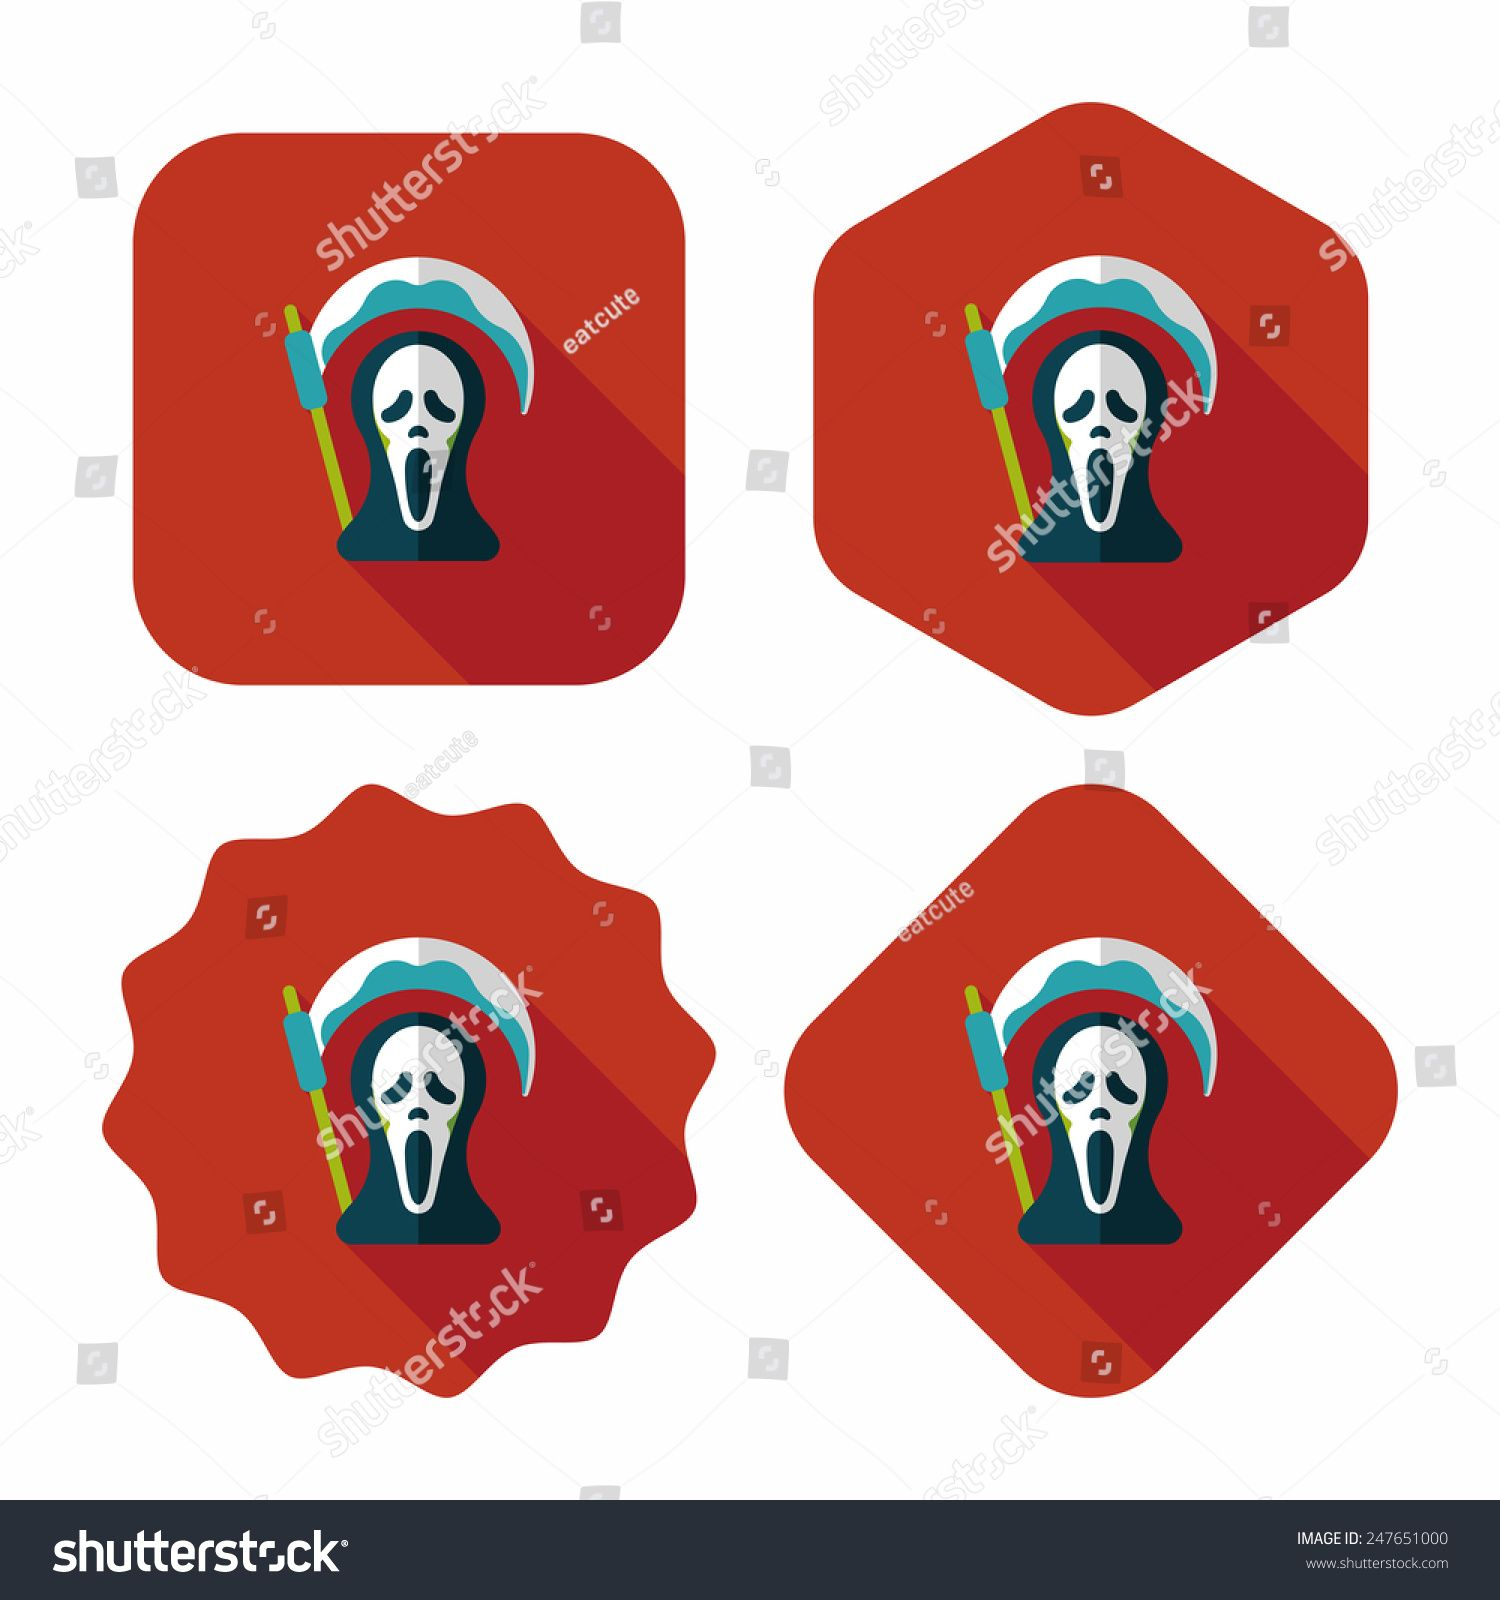 Grim Reaper flat icon with long shadow,eps10 #Ad , #Sponsored, #flat#Reaper#Grim#icon